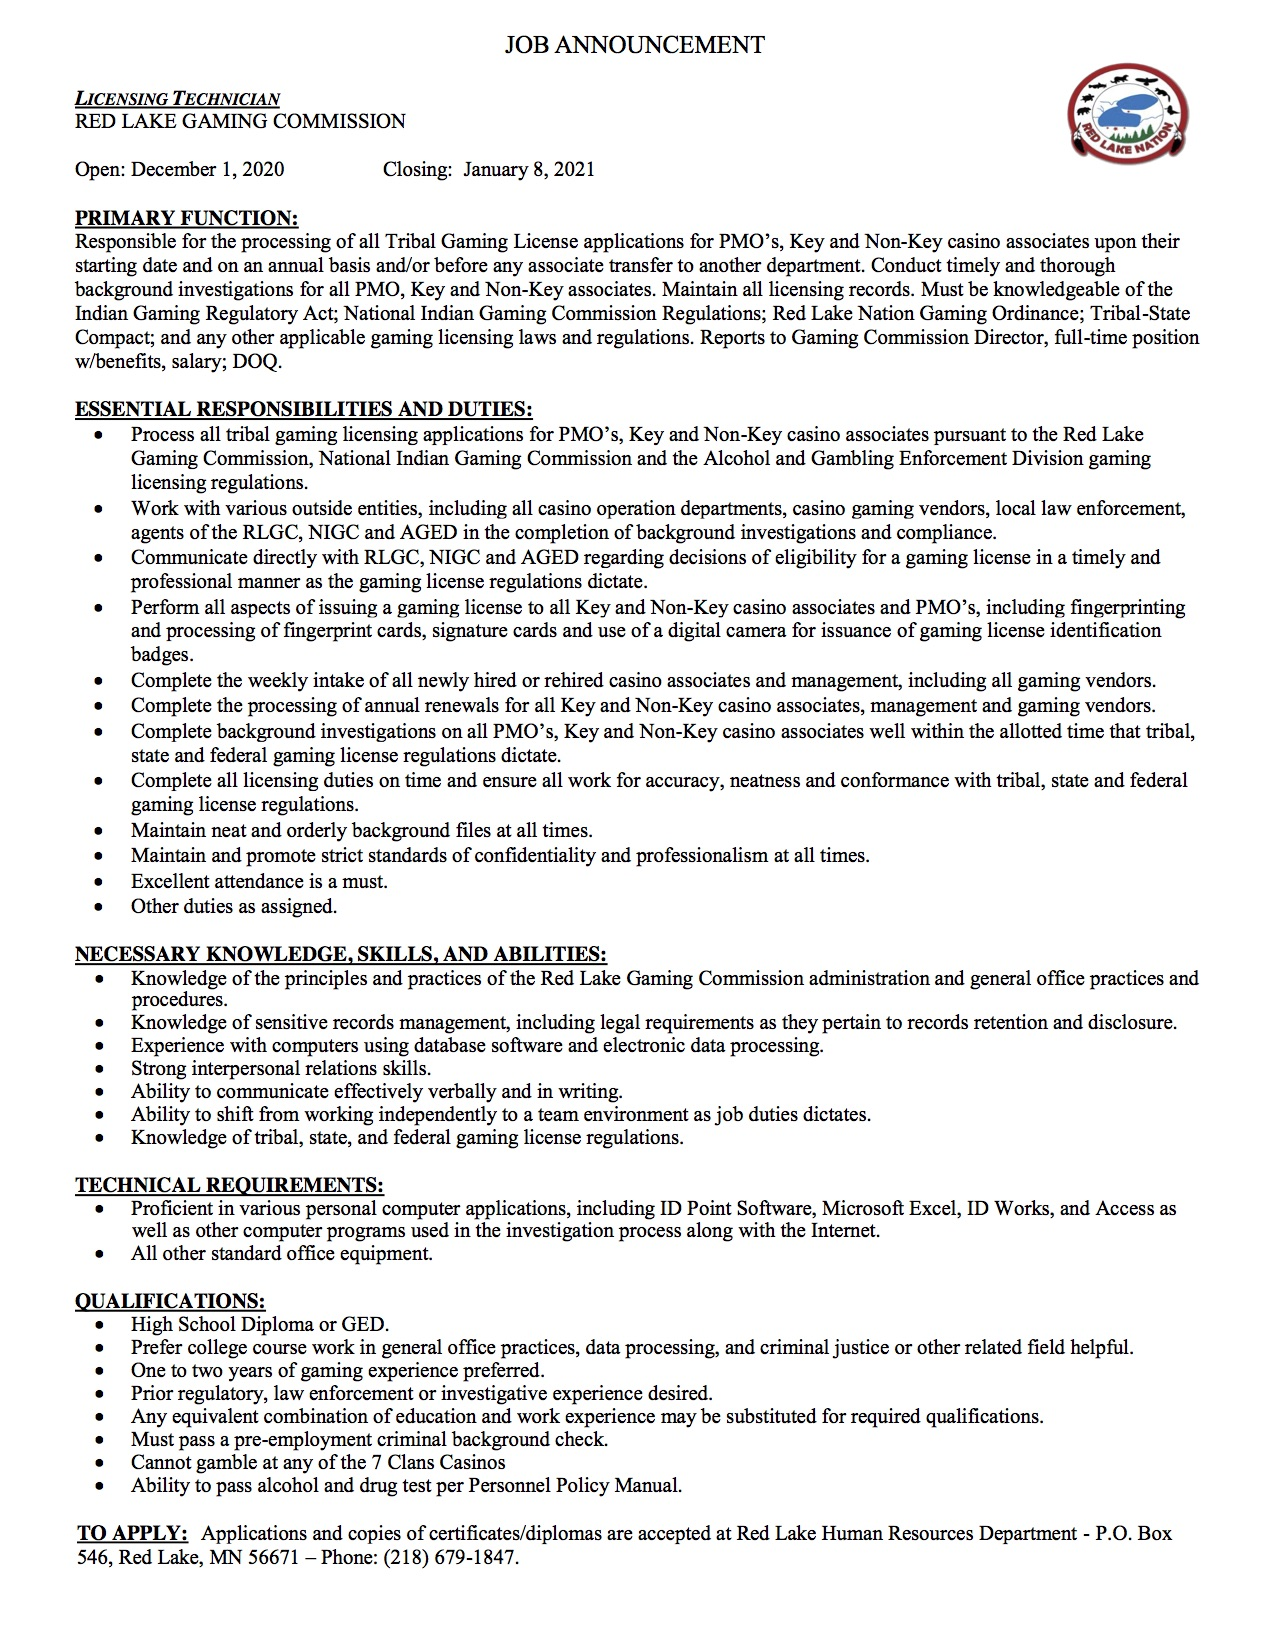 Licensing Technician-Gaming Commission Job Announcement-11-30-2020